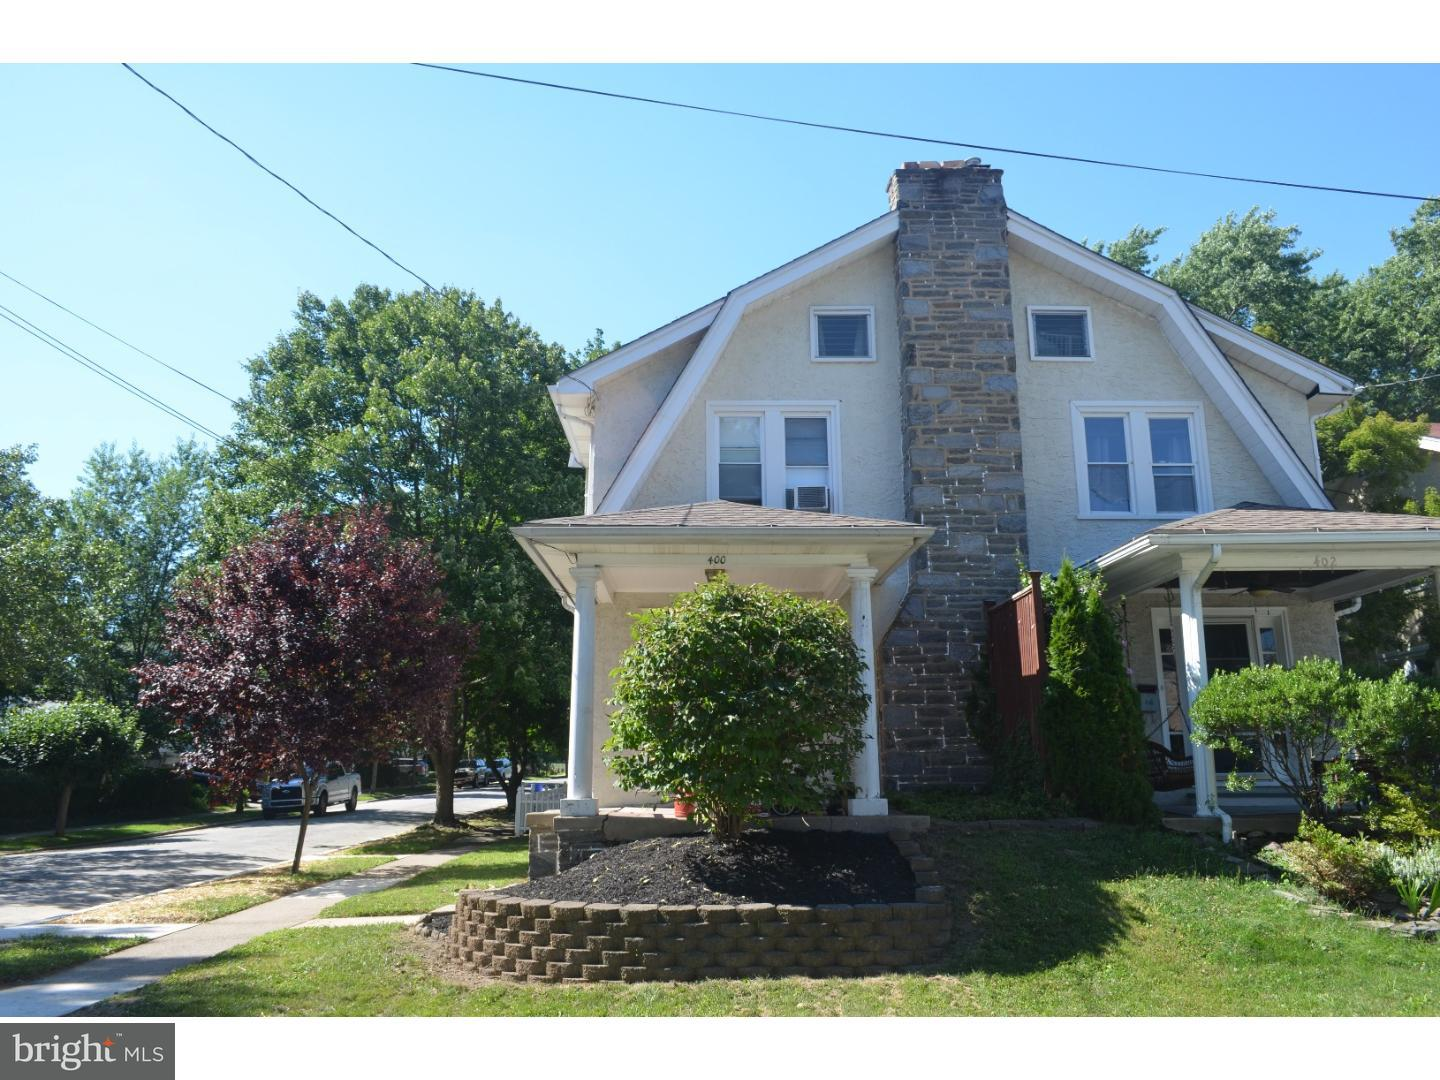 400 KENMORE RD, HAVERTOWN - Listed at $275,000, HAVERTOWN